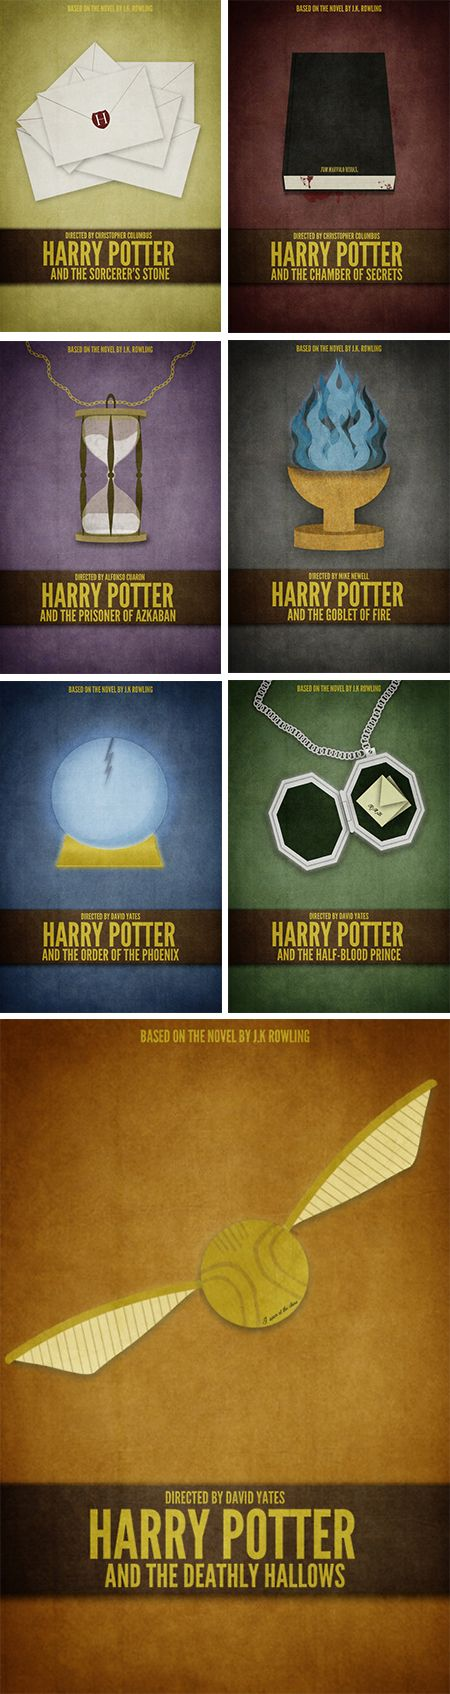 Brock Weaver has also designed book covers for HP but using a more detailed effect to catch peoples attention with the use of imagery and colour